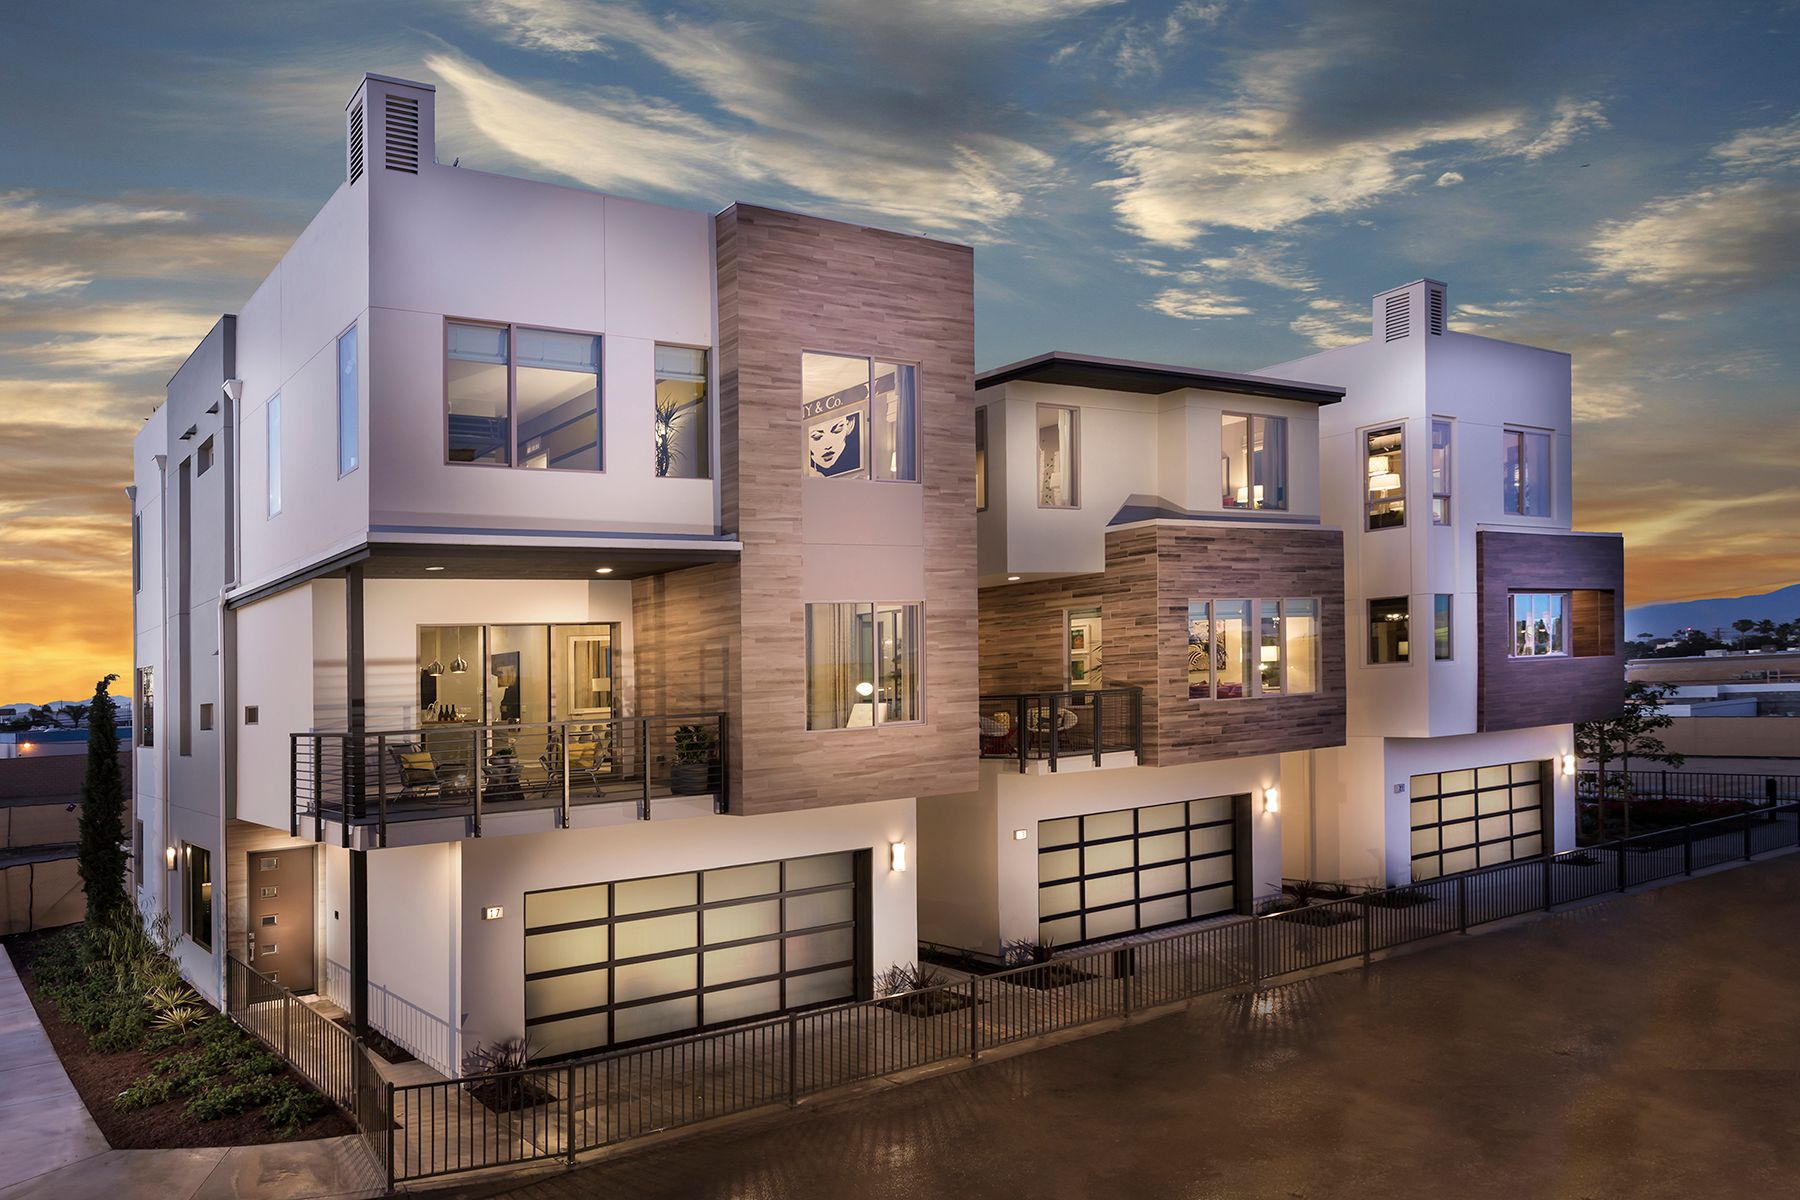 Ebb Tide By MBK Homes By MBK Homes In Orange County California